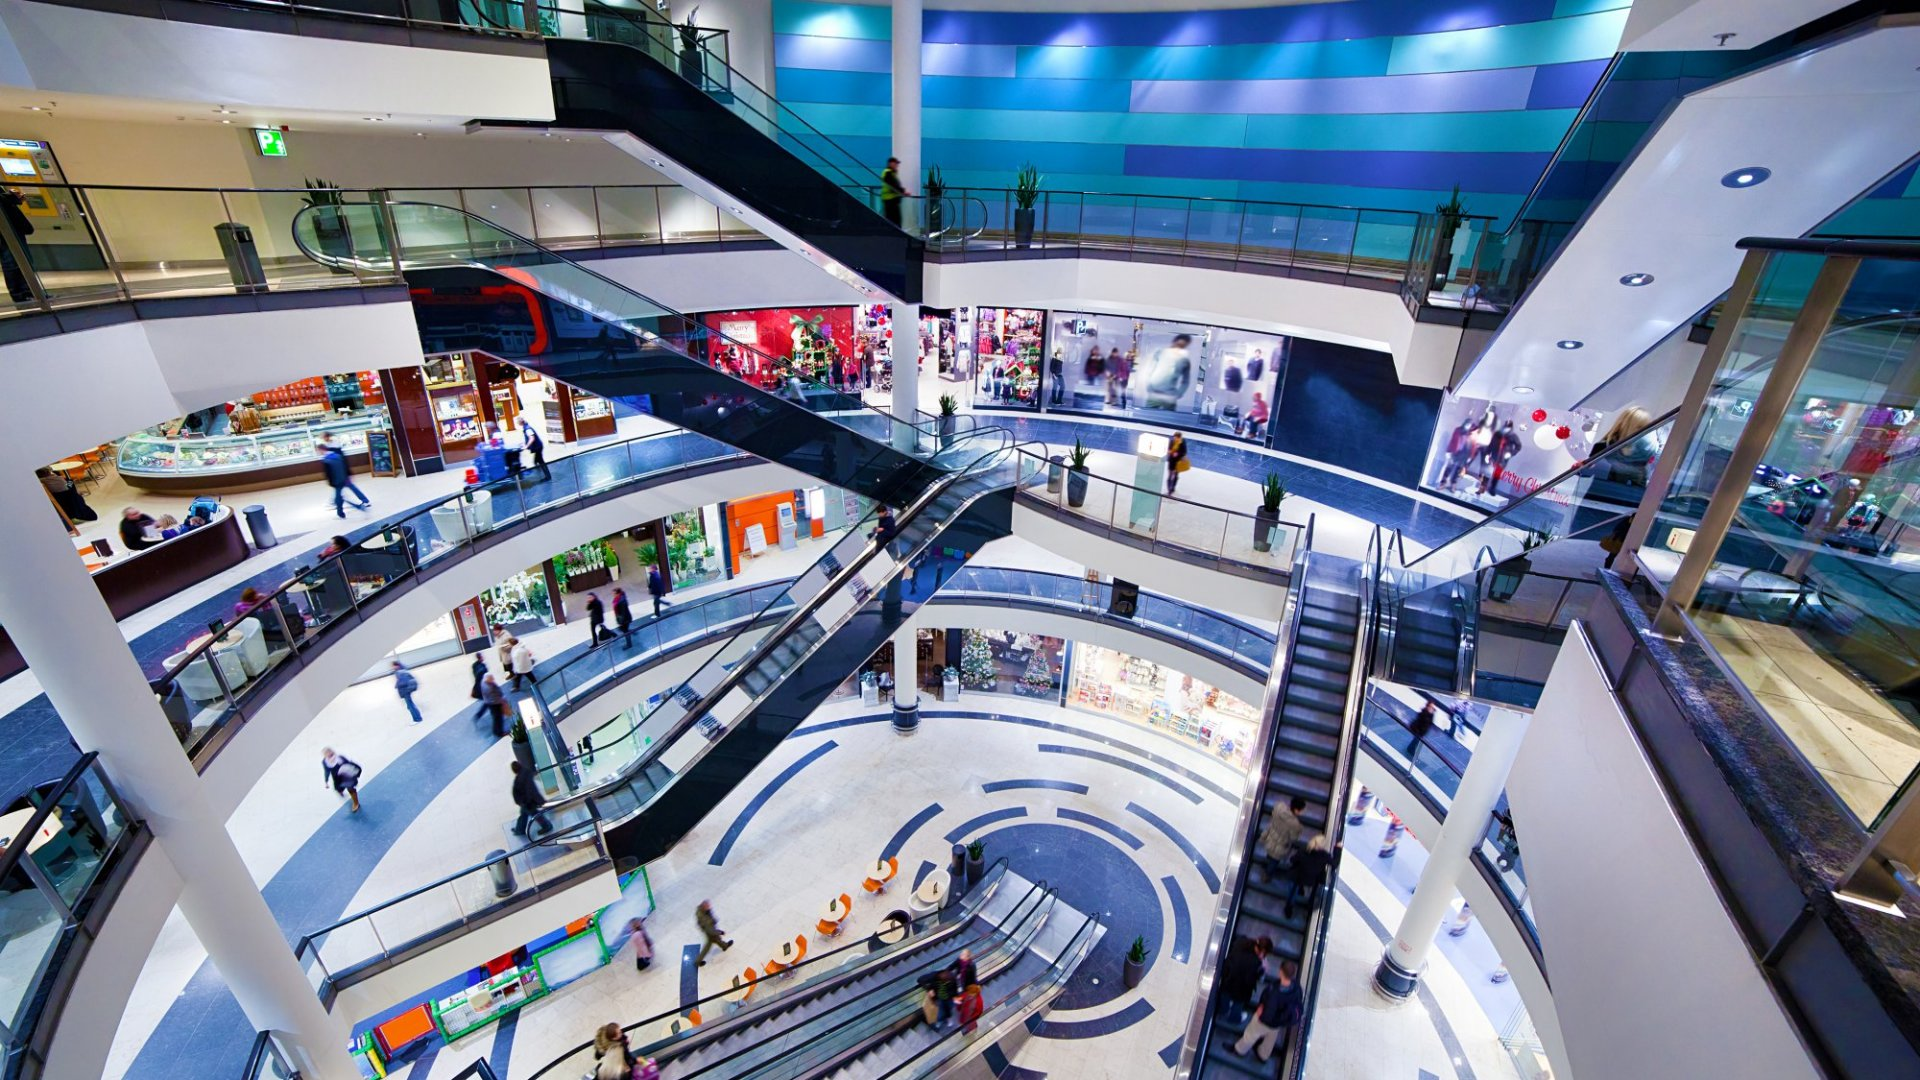 Amazon is Killing Shopping Malls - Right?  Not So Fast Says This Mall Developer CEO